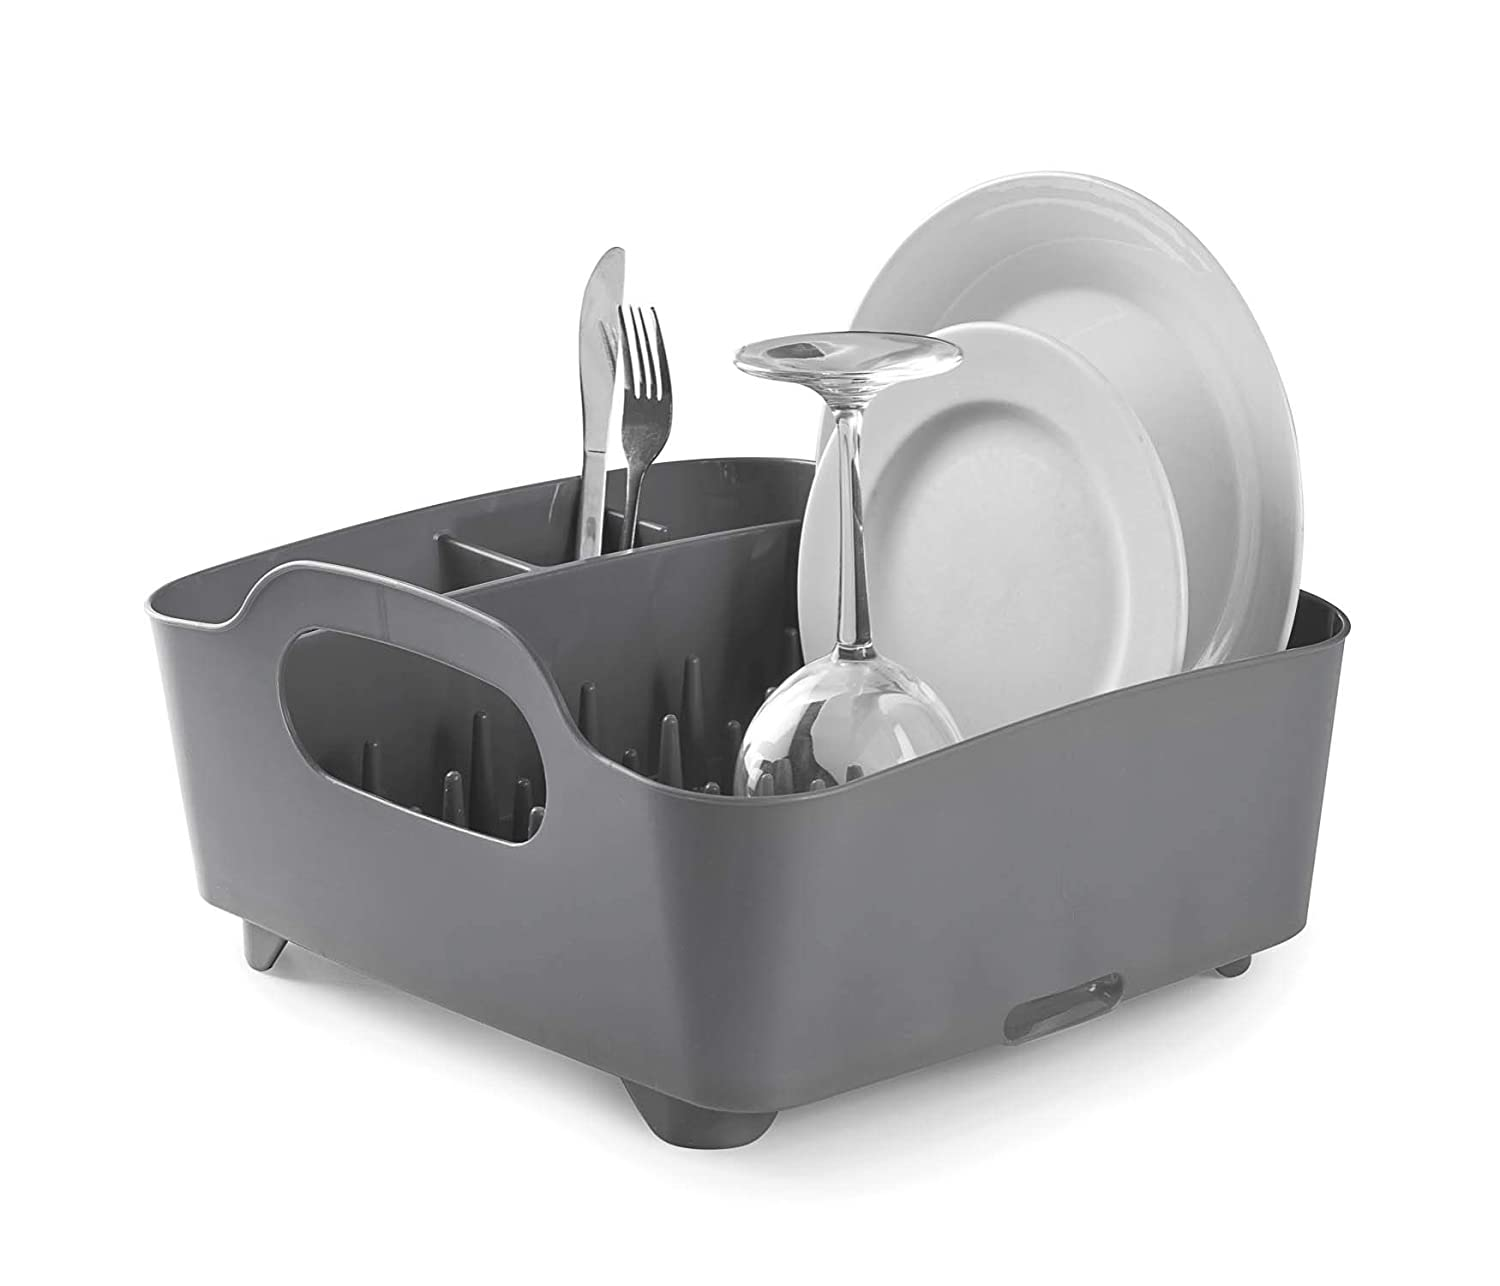 Umbra Tub Dish Drying Rack – Lightweight Self-Draining Dish Rack for Kitchen Sink and Counter at Home, RV or Motorhome, Charcoal